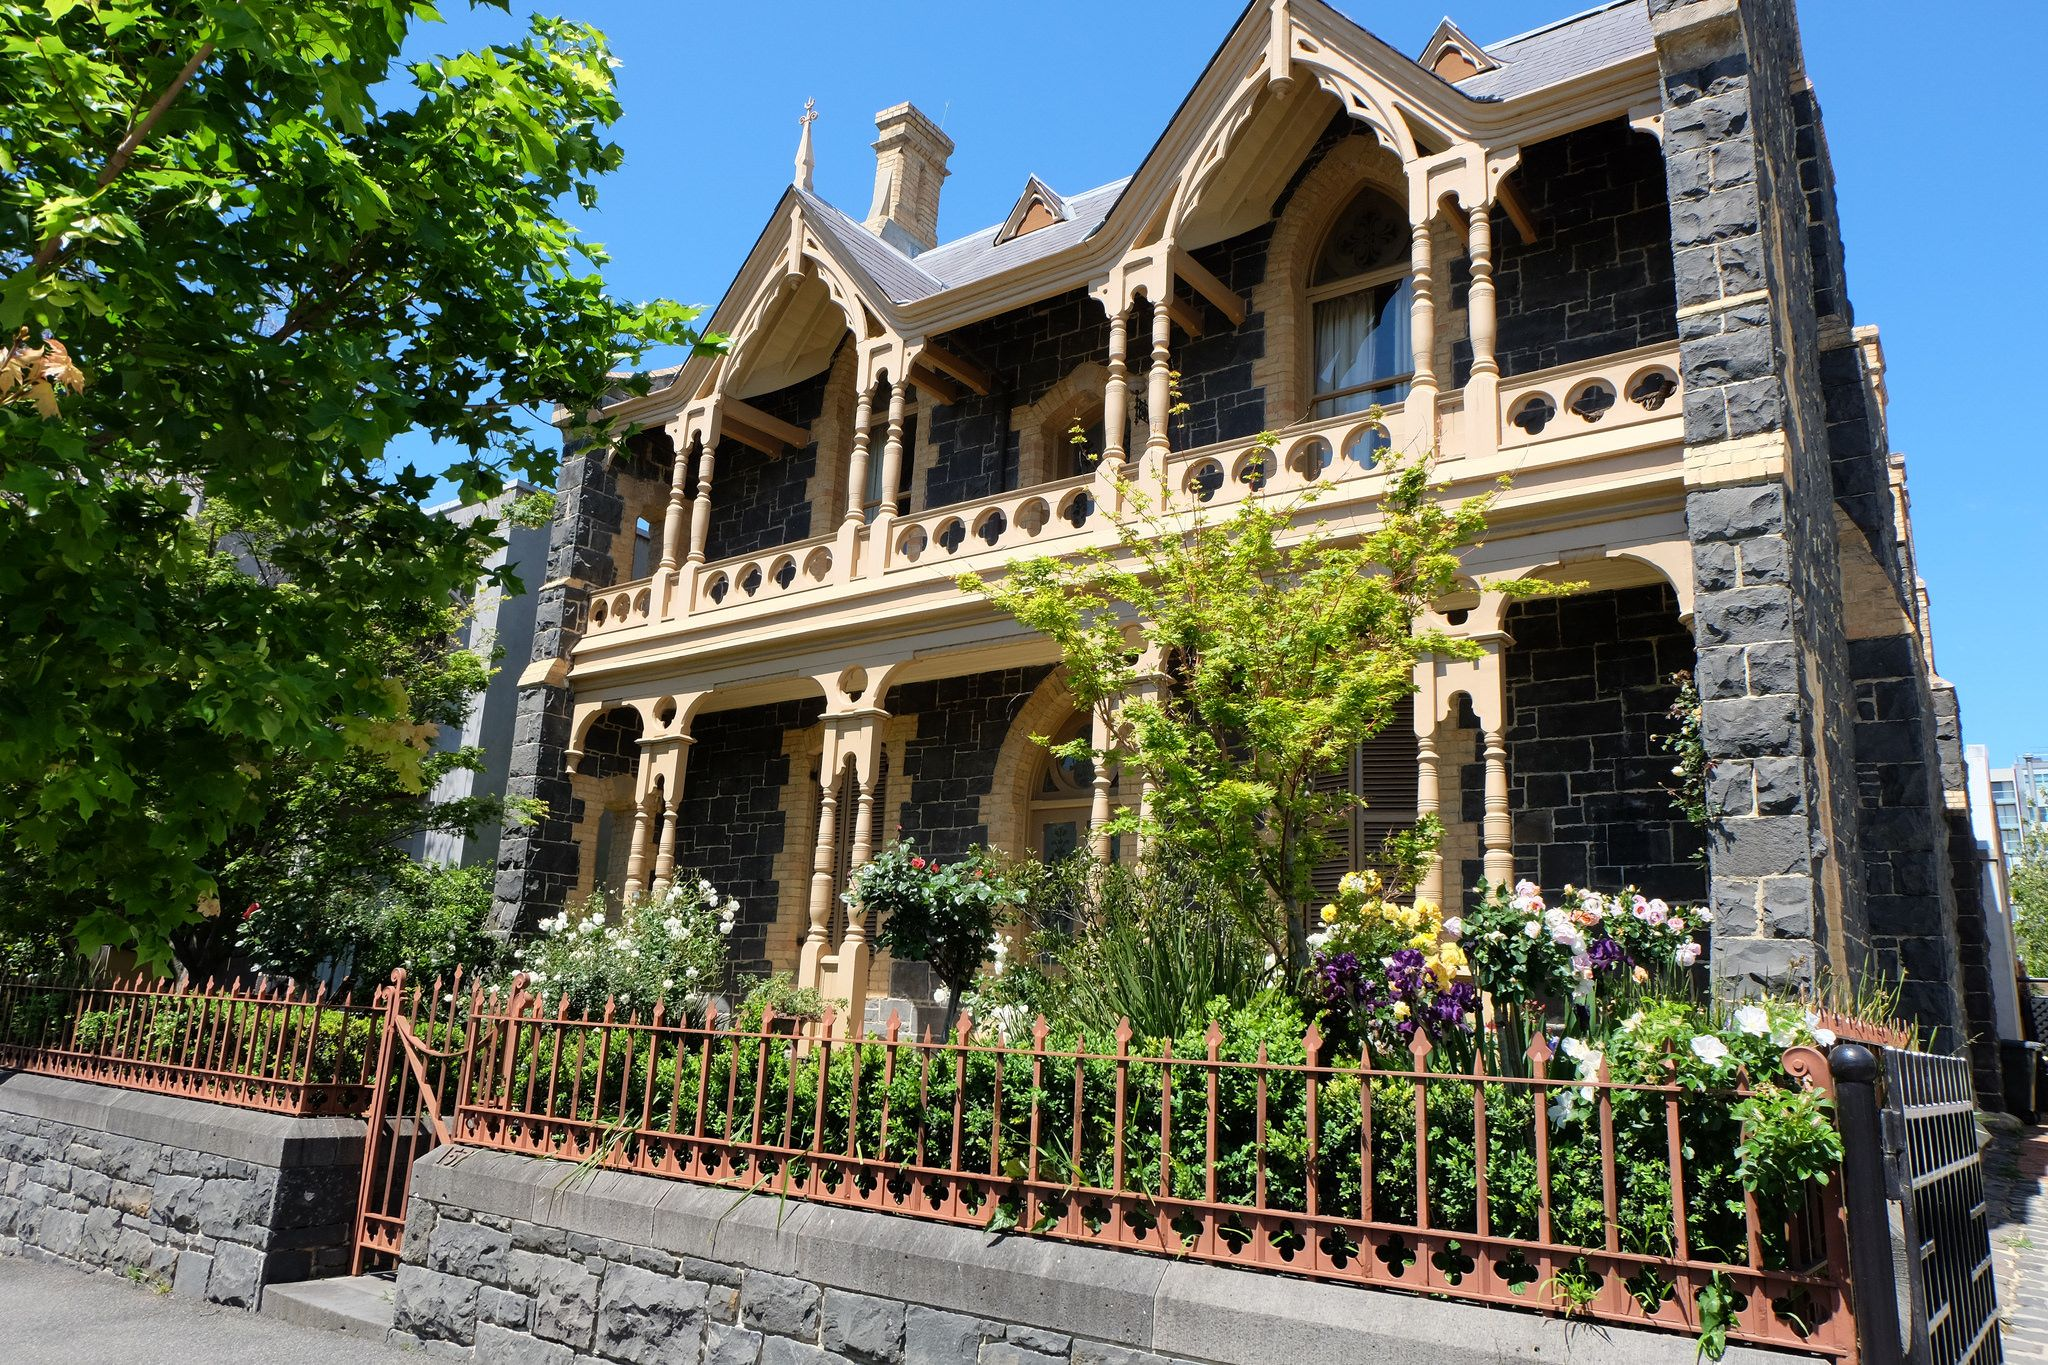 Beautiful Gothic Revival Blue Stone House 57 Hotham Street EAST MELBOURNE Built In The